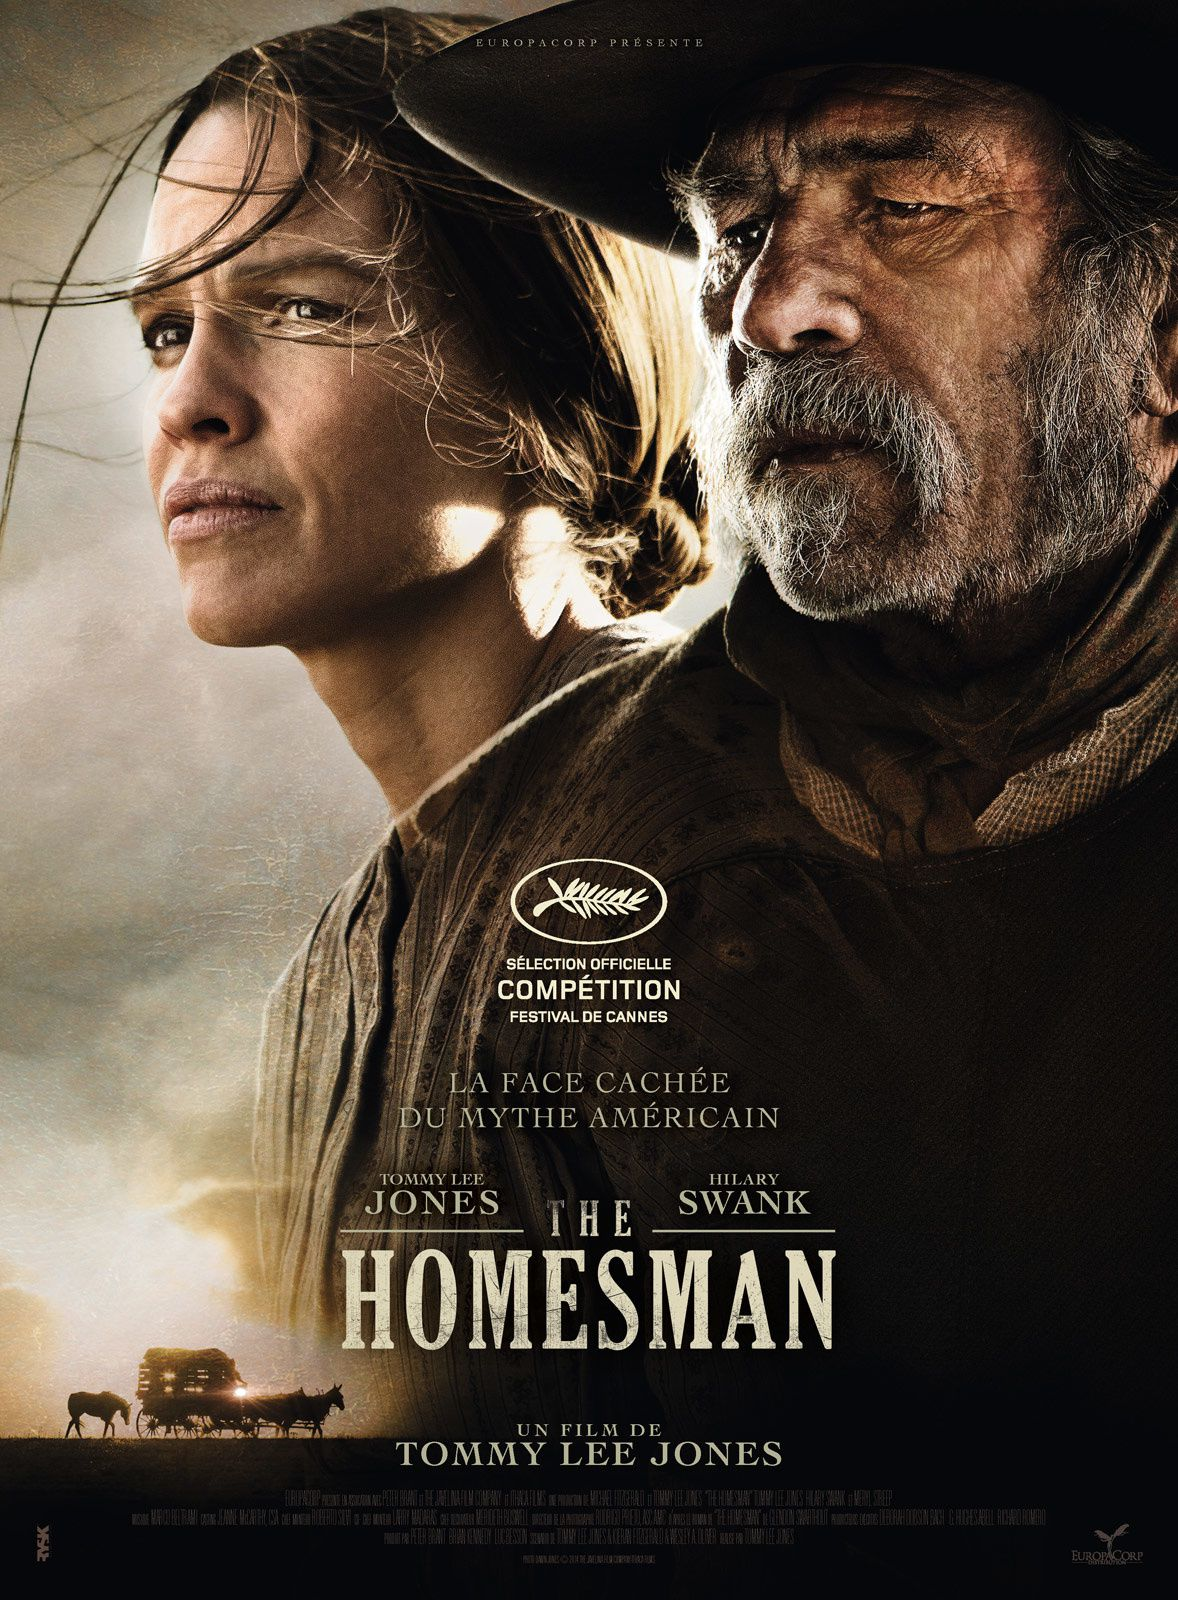 The Homesman / CINEMA / de &amp&#x3B; avec Tommy Lee Jones